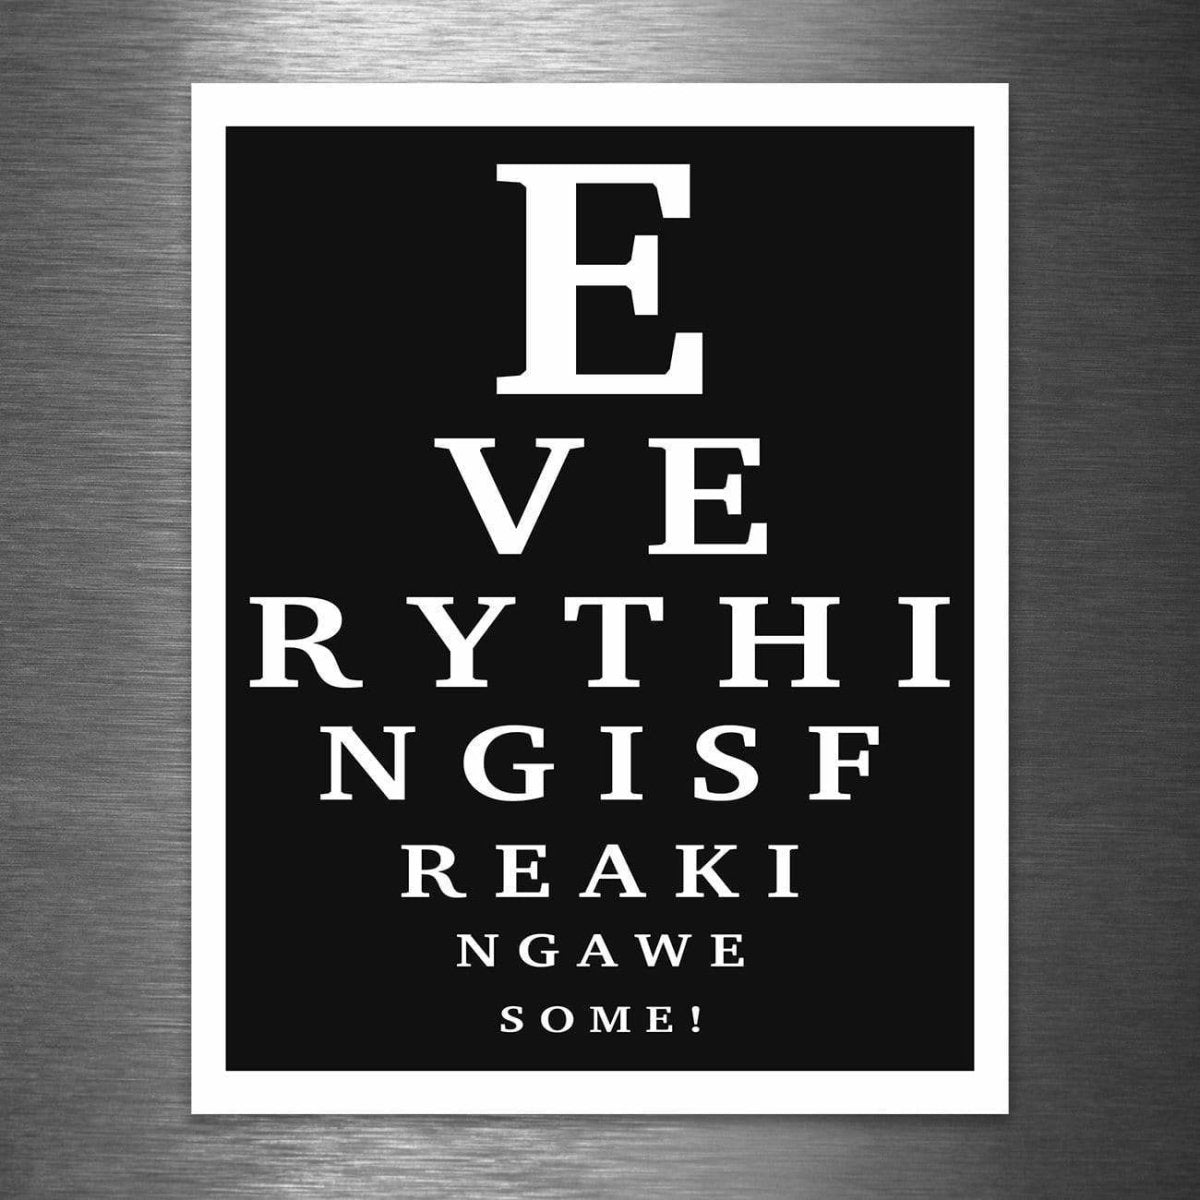 Eye Chart EVERYTHING IS FREAKING AWESOME - Vinyl Sticker - Dan Pearce Sticker Shop